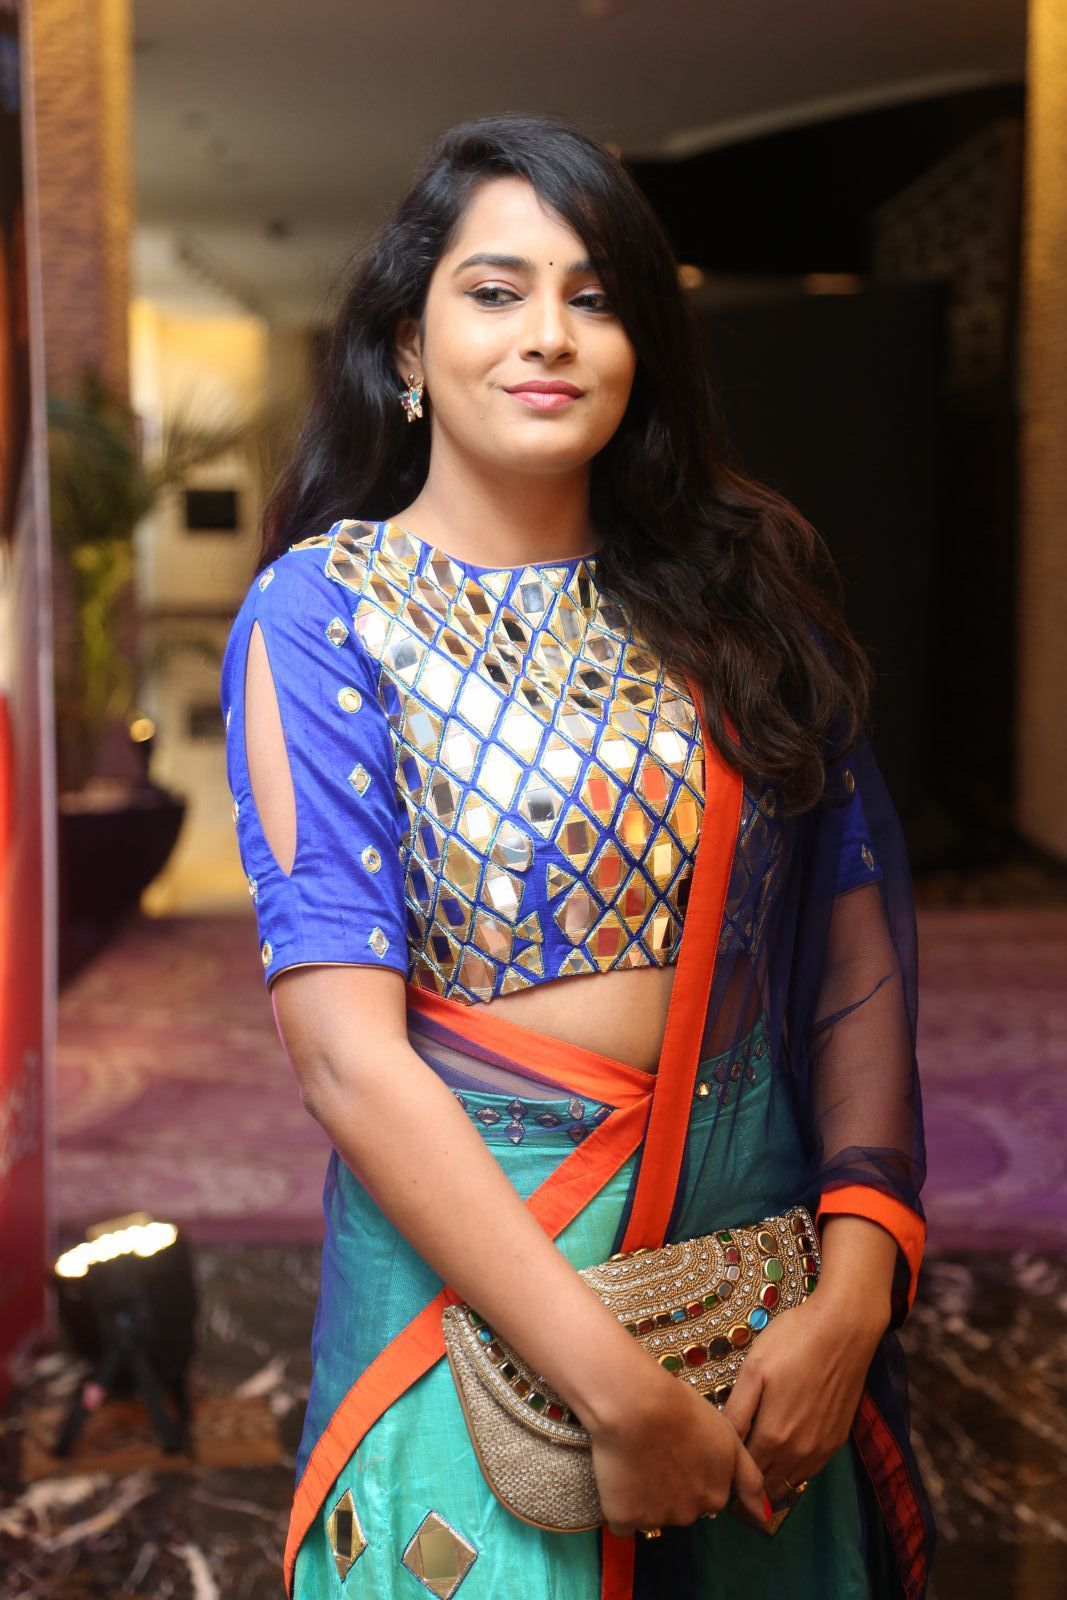 himaza Brand New Photo Stills of Tollywood Actress Himaza | South Actresses Himaza 67